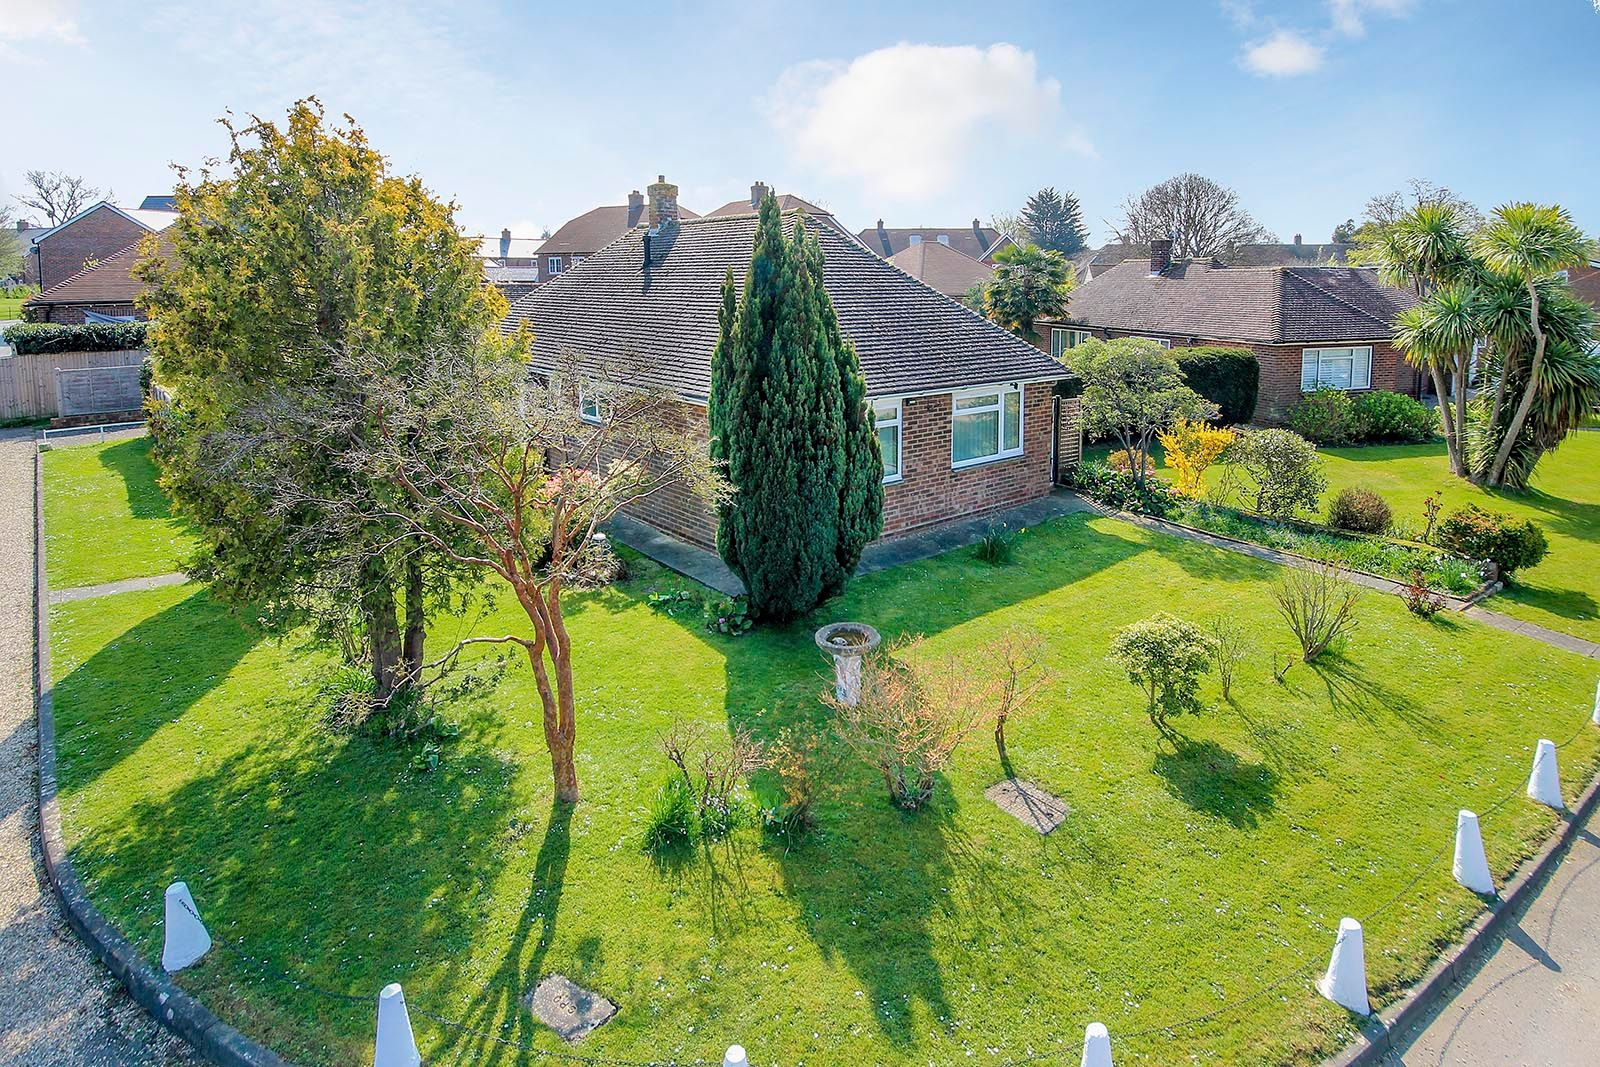 2 bed bungalow for sale in Halliford Drive (COMP AUG 19) - Property Image 1